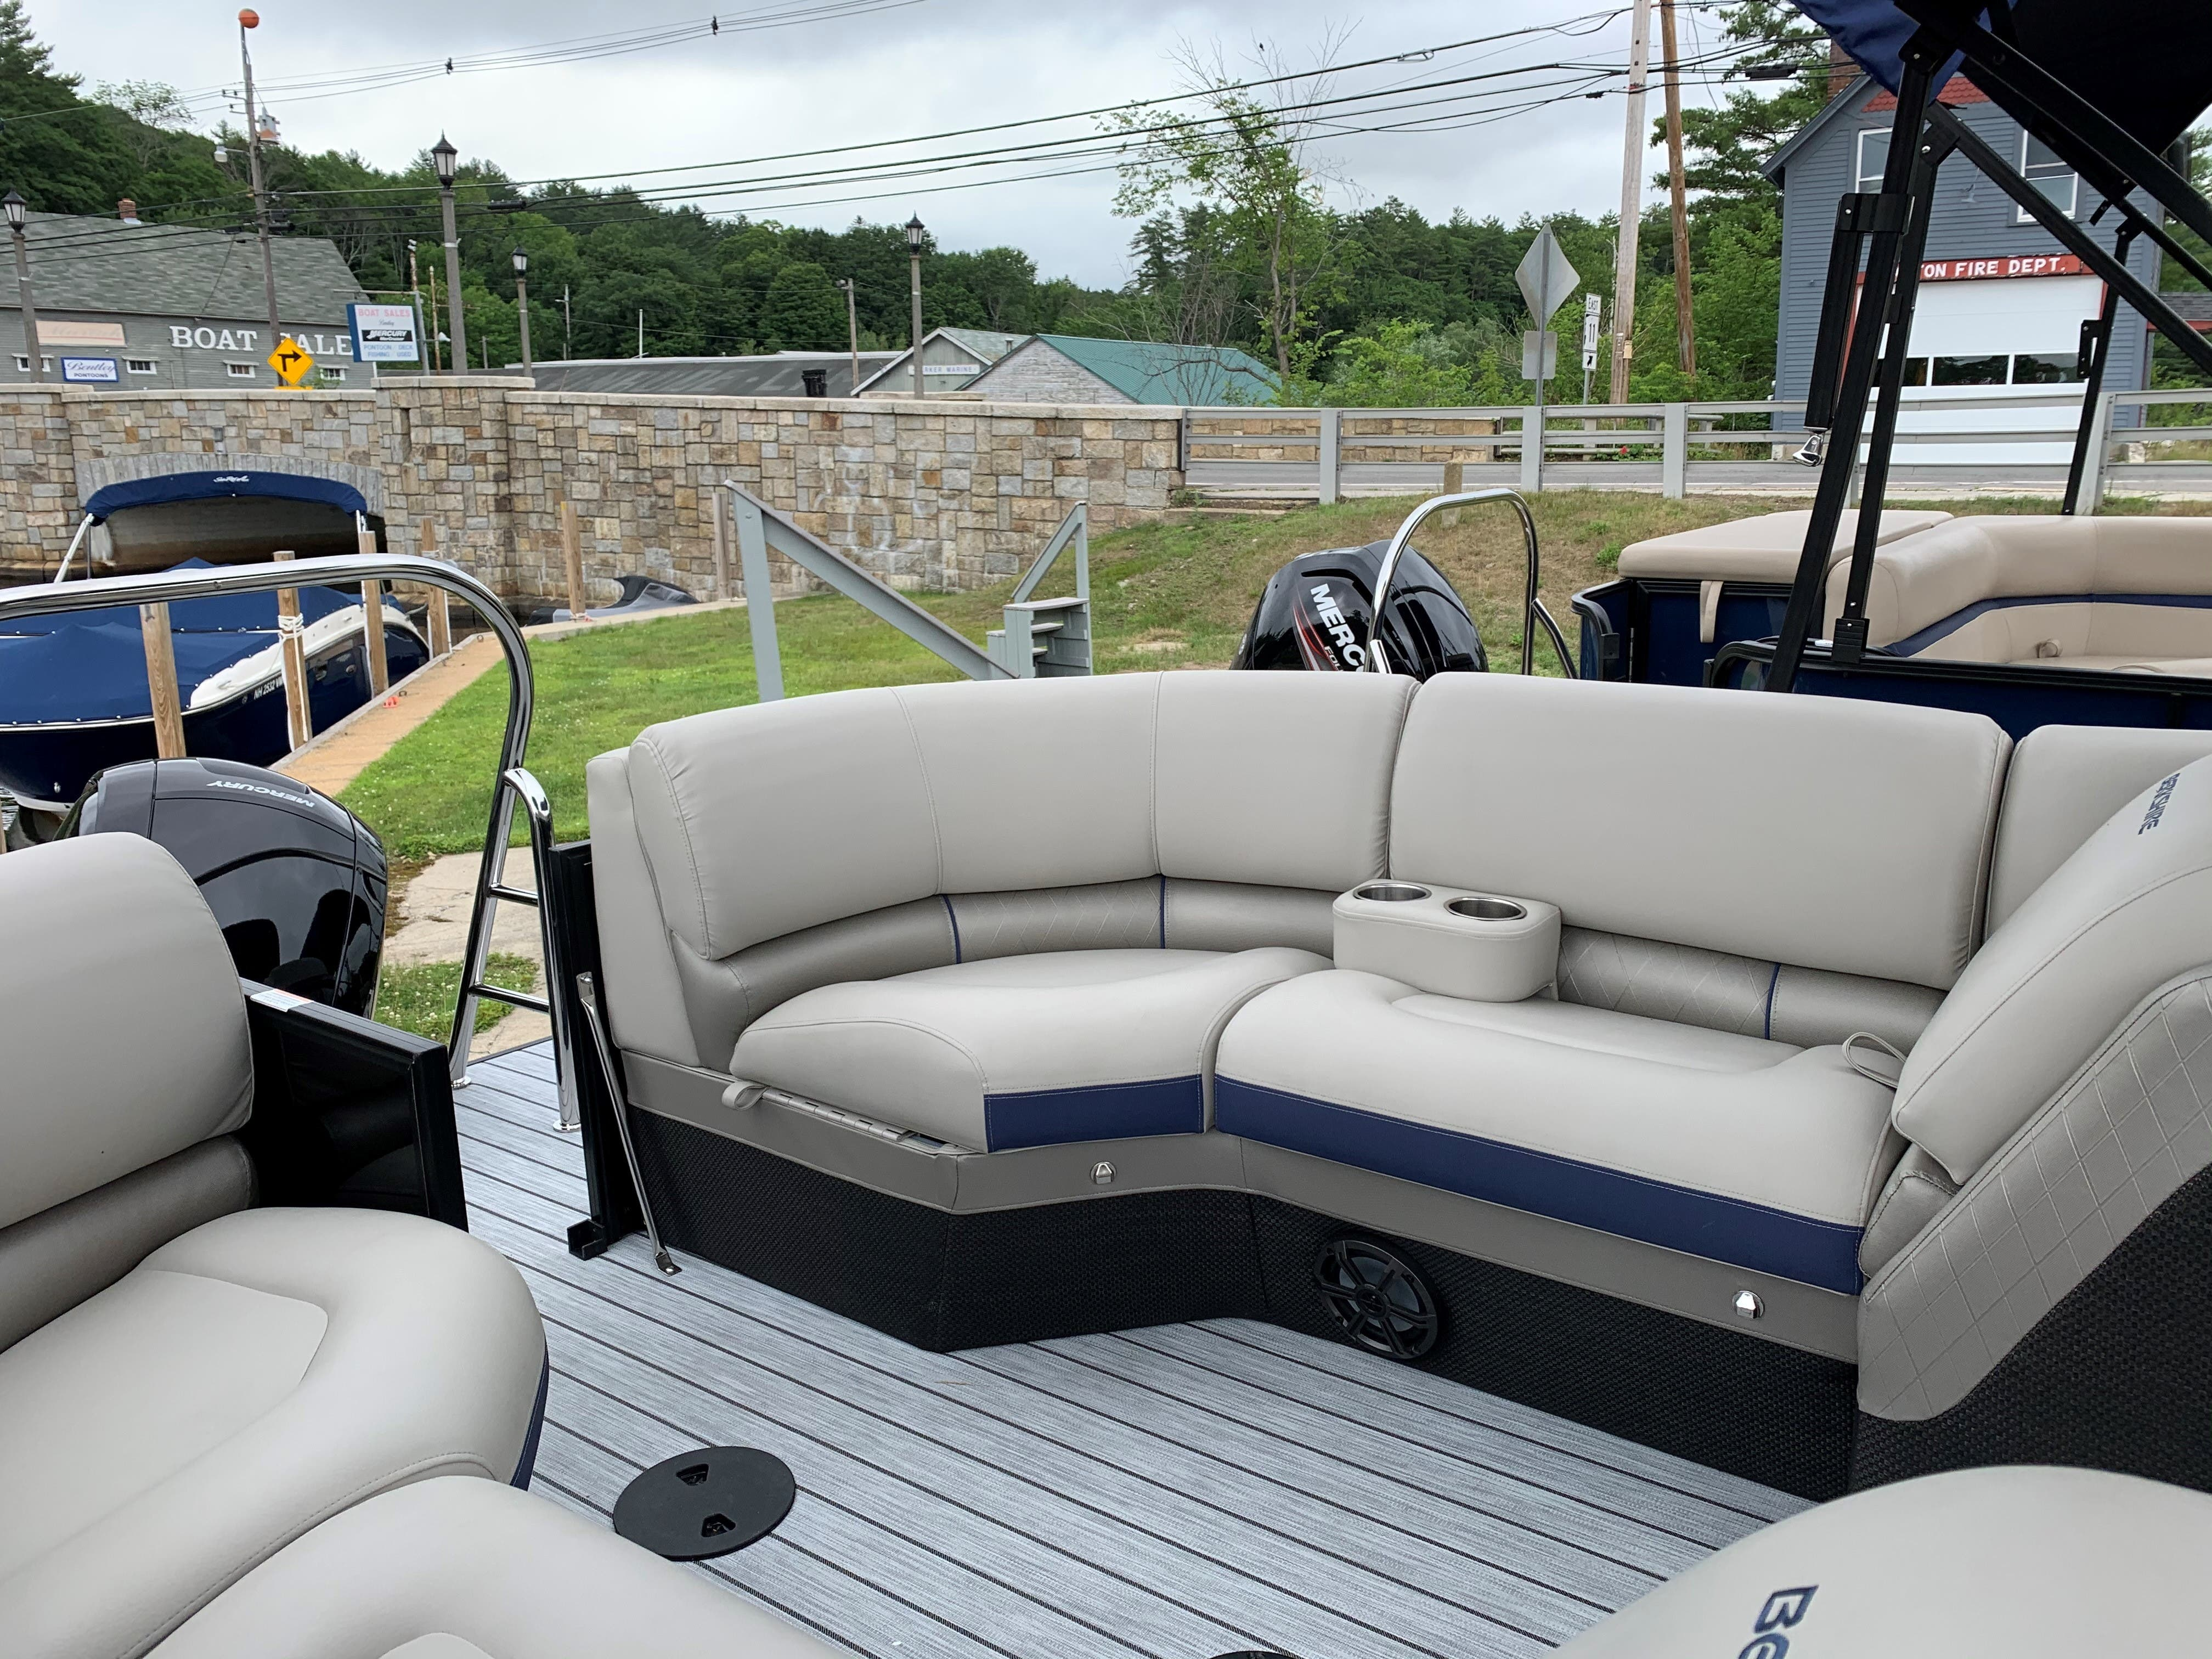 2020 Berkshire Pontoons boat for sale, model of the boat is 23rfx Sts & Image # 5 of 11